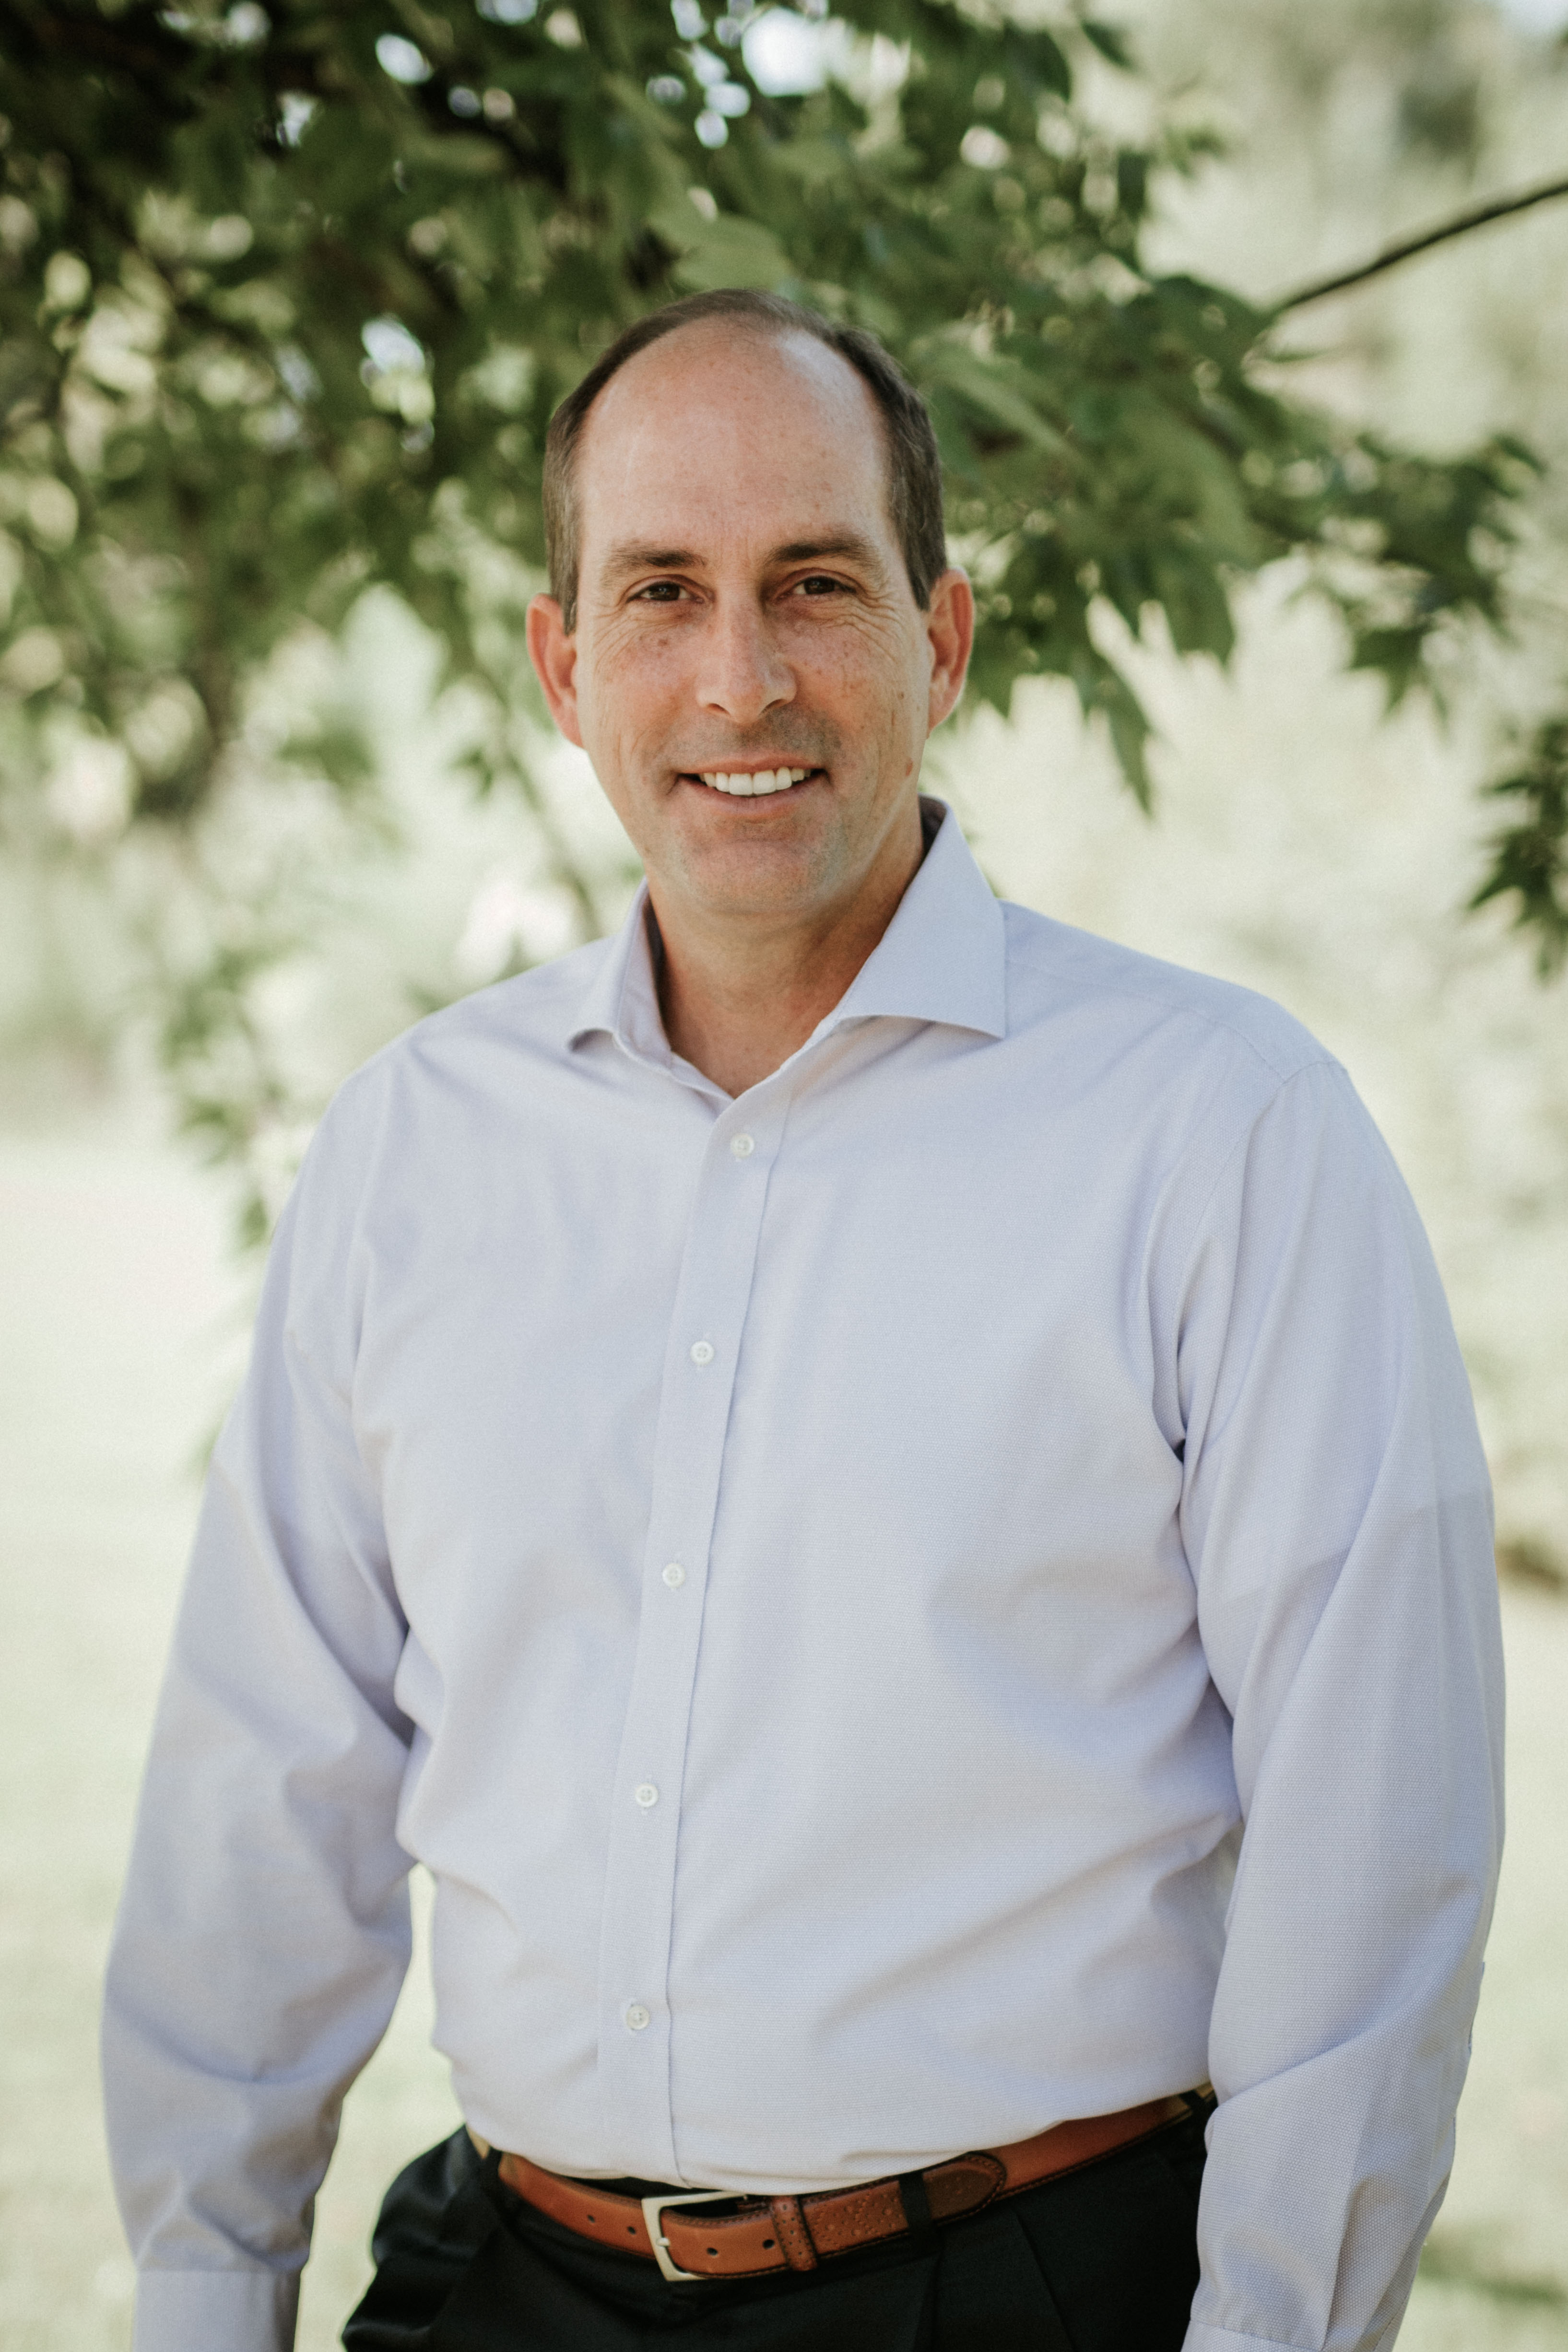 Gladney Press Release: Gladney Appoints Mark Melson as President & CEO